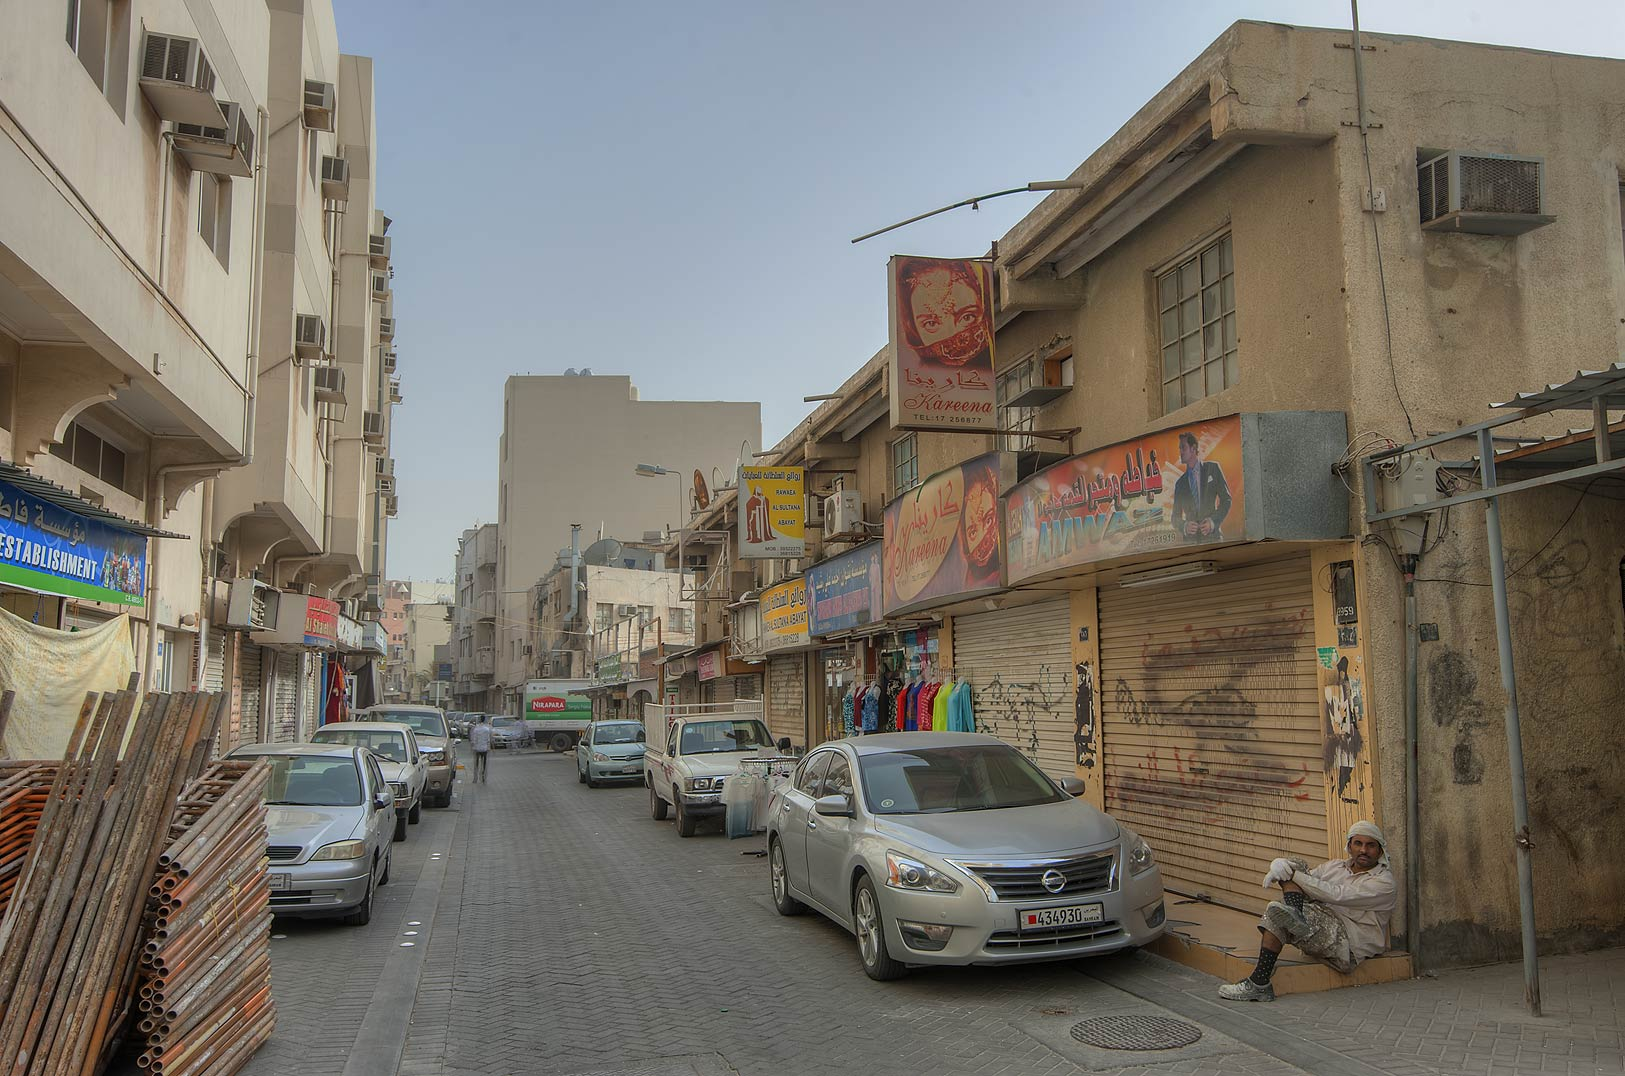 Narrow street in Souq (market) area in Central Manama. Bahrain